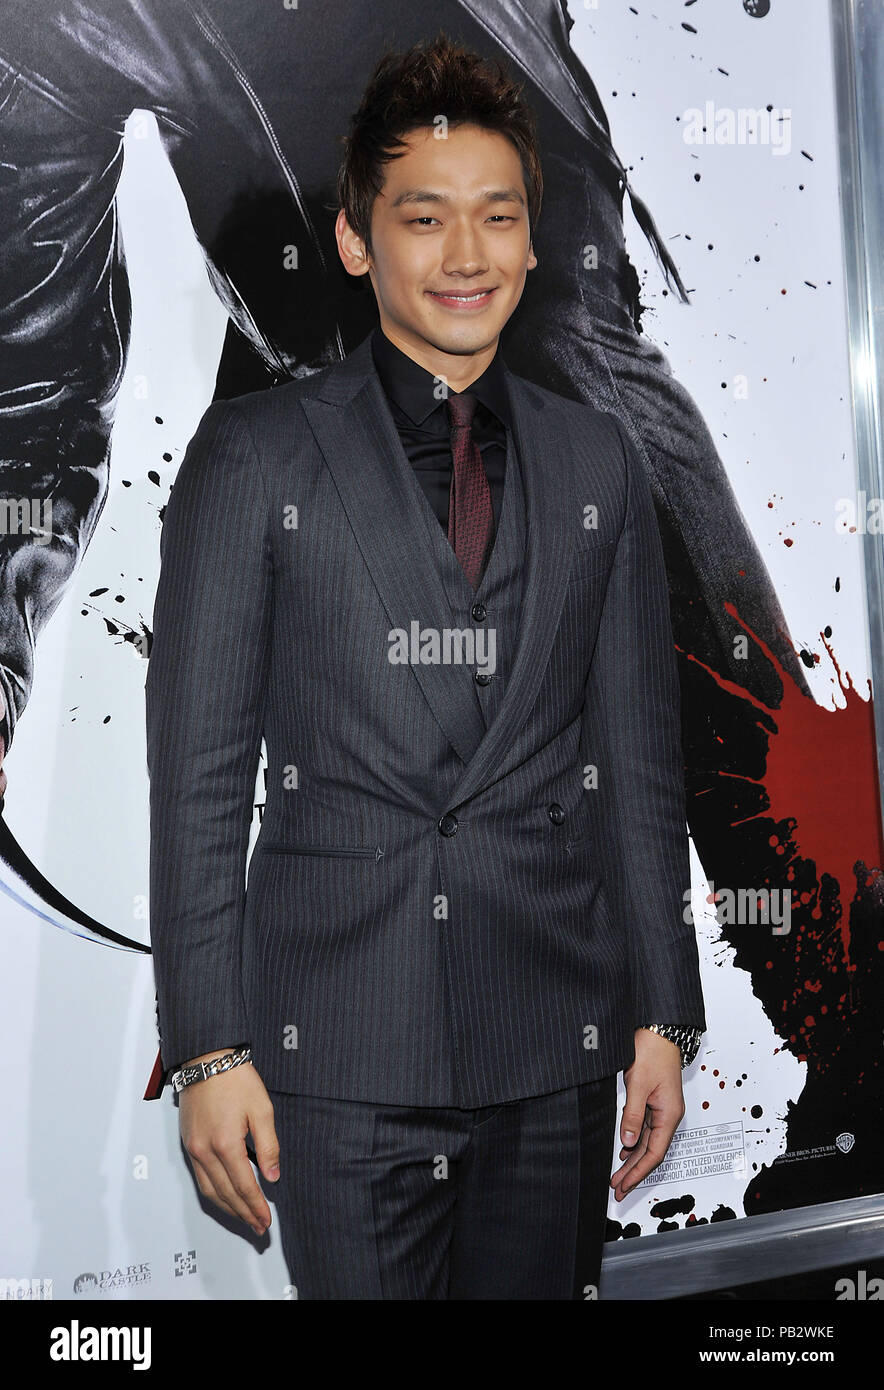 Rain Raizo   - NINJA ASSASSIN Premiere at GraumanÕs Chinese Theatre In Los Angeles.Rain Raizo_26 Red Carpet Event, Vertical, USA, Film Industry, Celebrities,  Photography, Bestof, Arts Culture and Entertainment, Topix Celebrities fashion /  Vertical, Best of, Event in Hollywood Life - California,  Red Carpet and backstage, USA, Film Industry, Celebrities,  movie celebrities, TV celebrities, Music celebrities, Photography, Bestof, Arts Culture and Entertainment,  Topix, vertical, one person,, from the years , 2006 to 2009, inquiry tsuni@Gamma-USA.com - Three Quarters - Stock Image